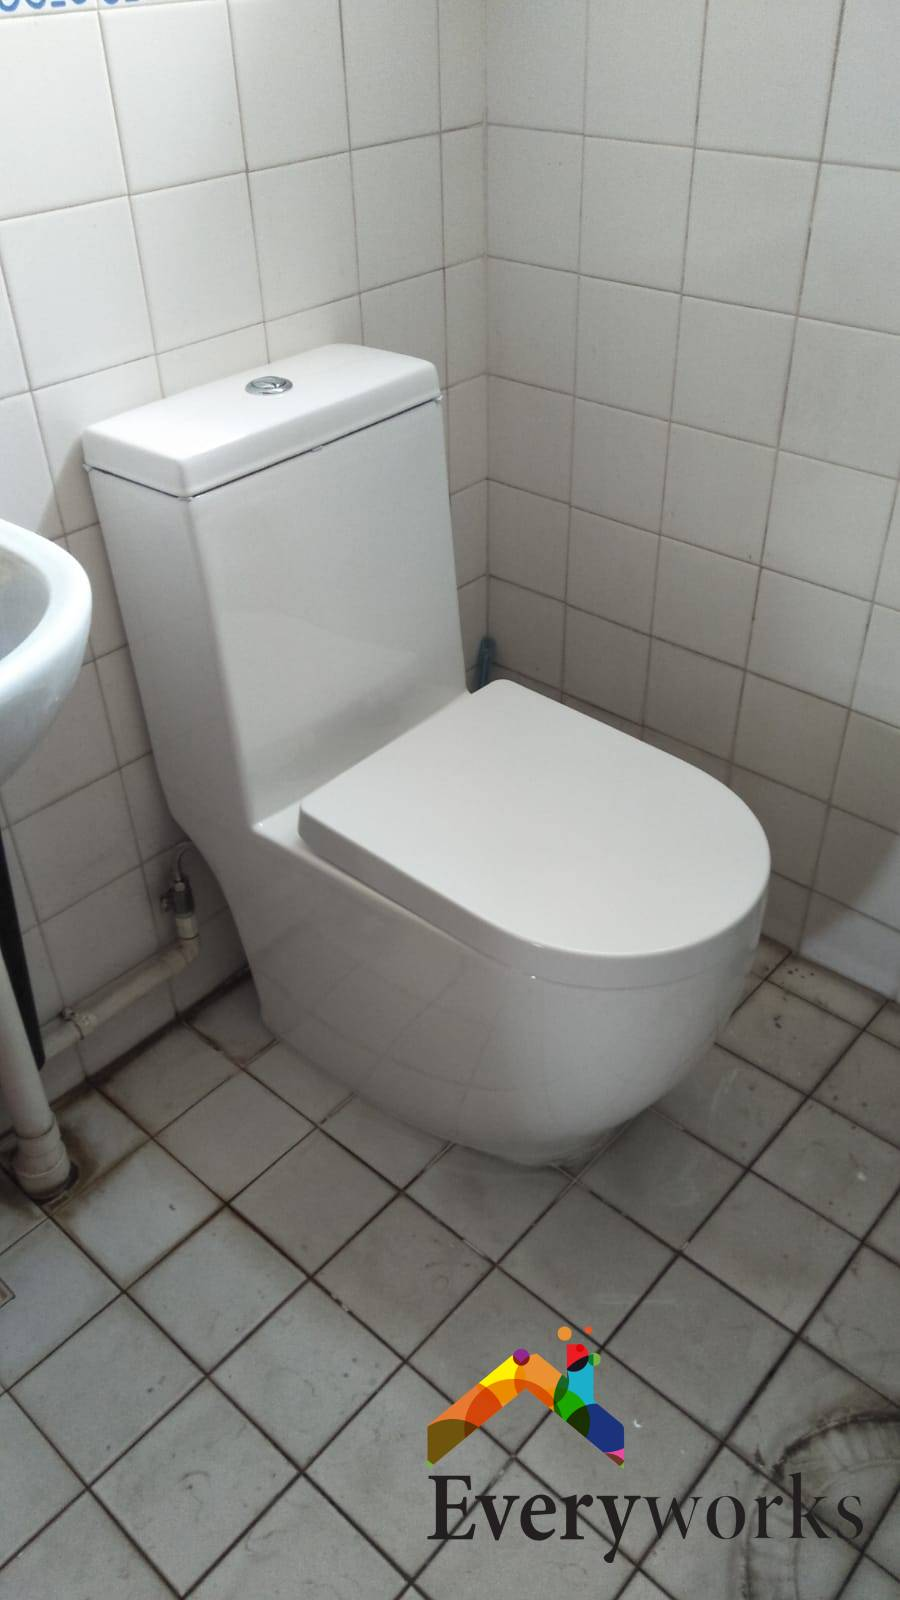 Toilet Bowl Replacement Toilet Bowl Installation Plumber Singapore HDB – Woodlands